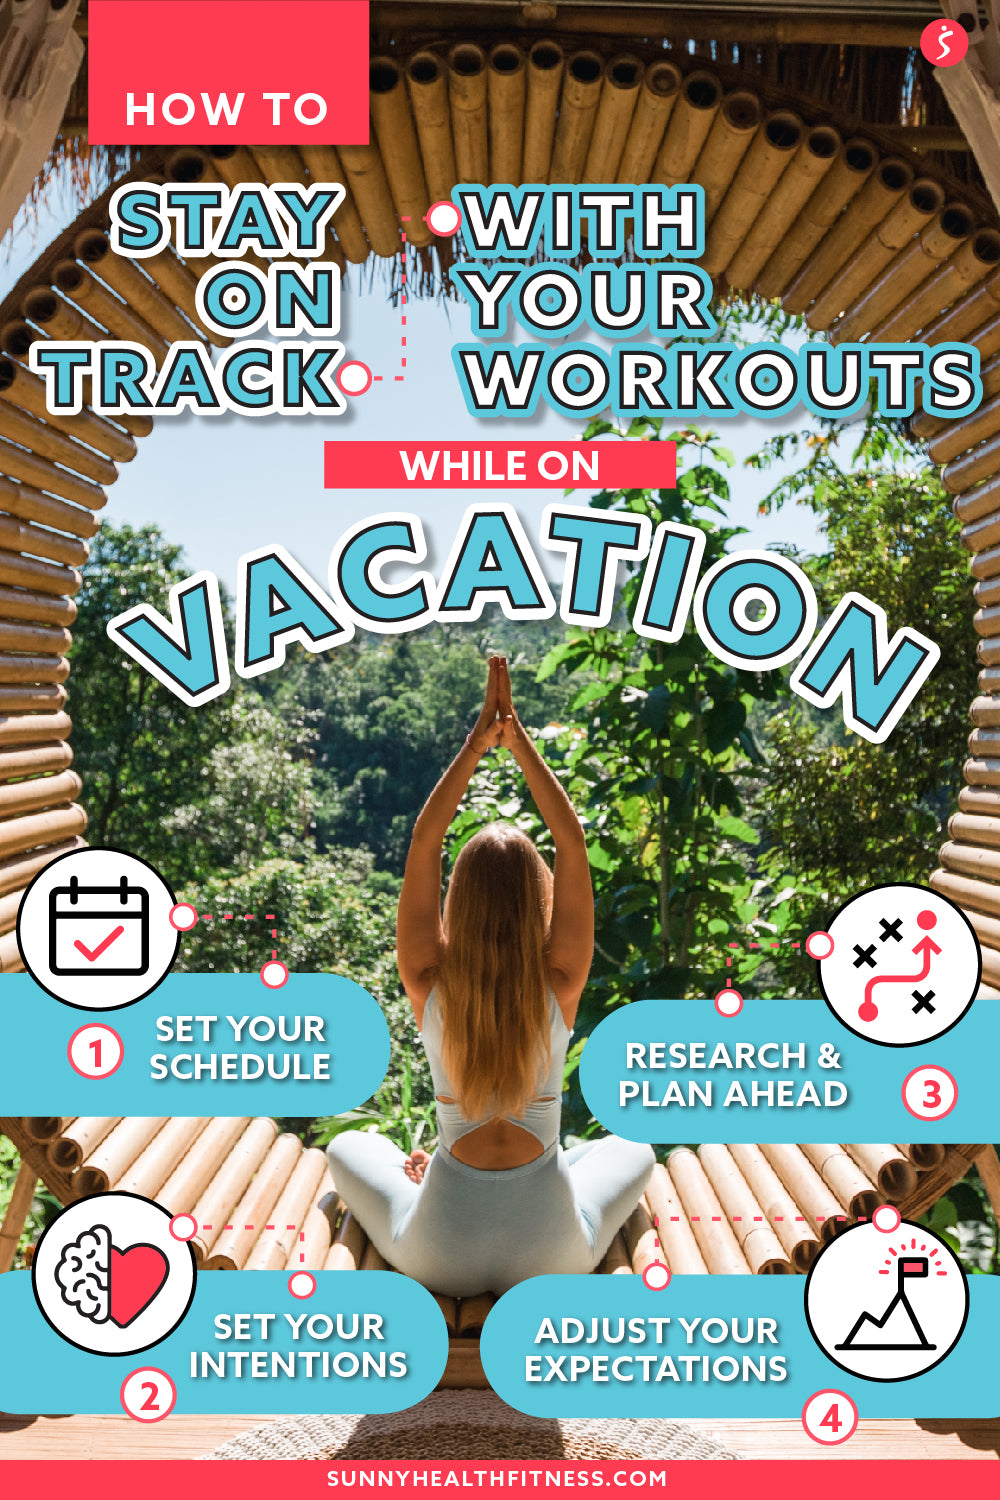 4 Practical Tips to Help Your Workouts Stay On Track During Vacation